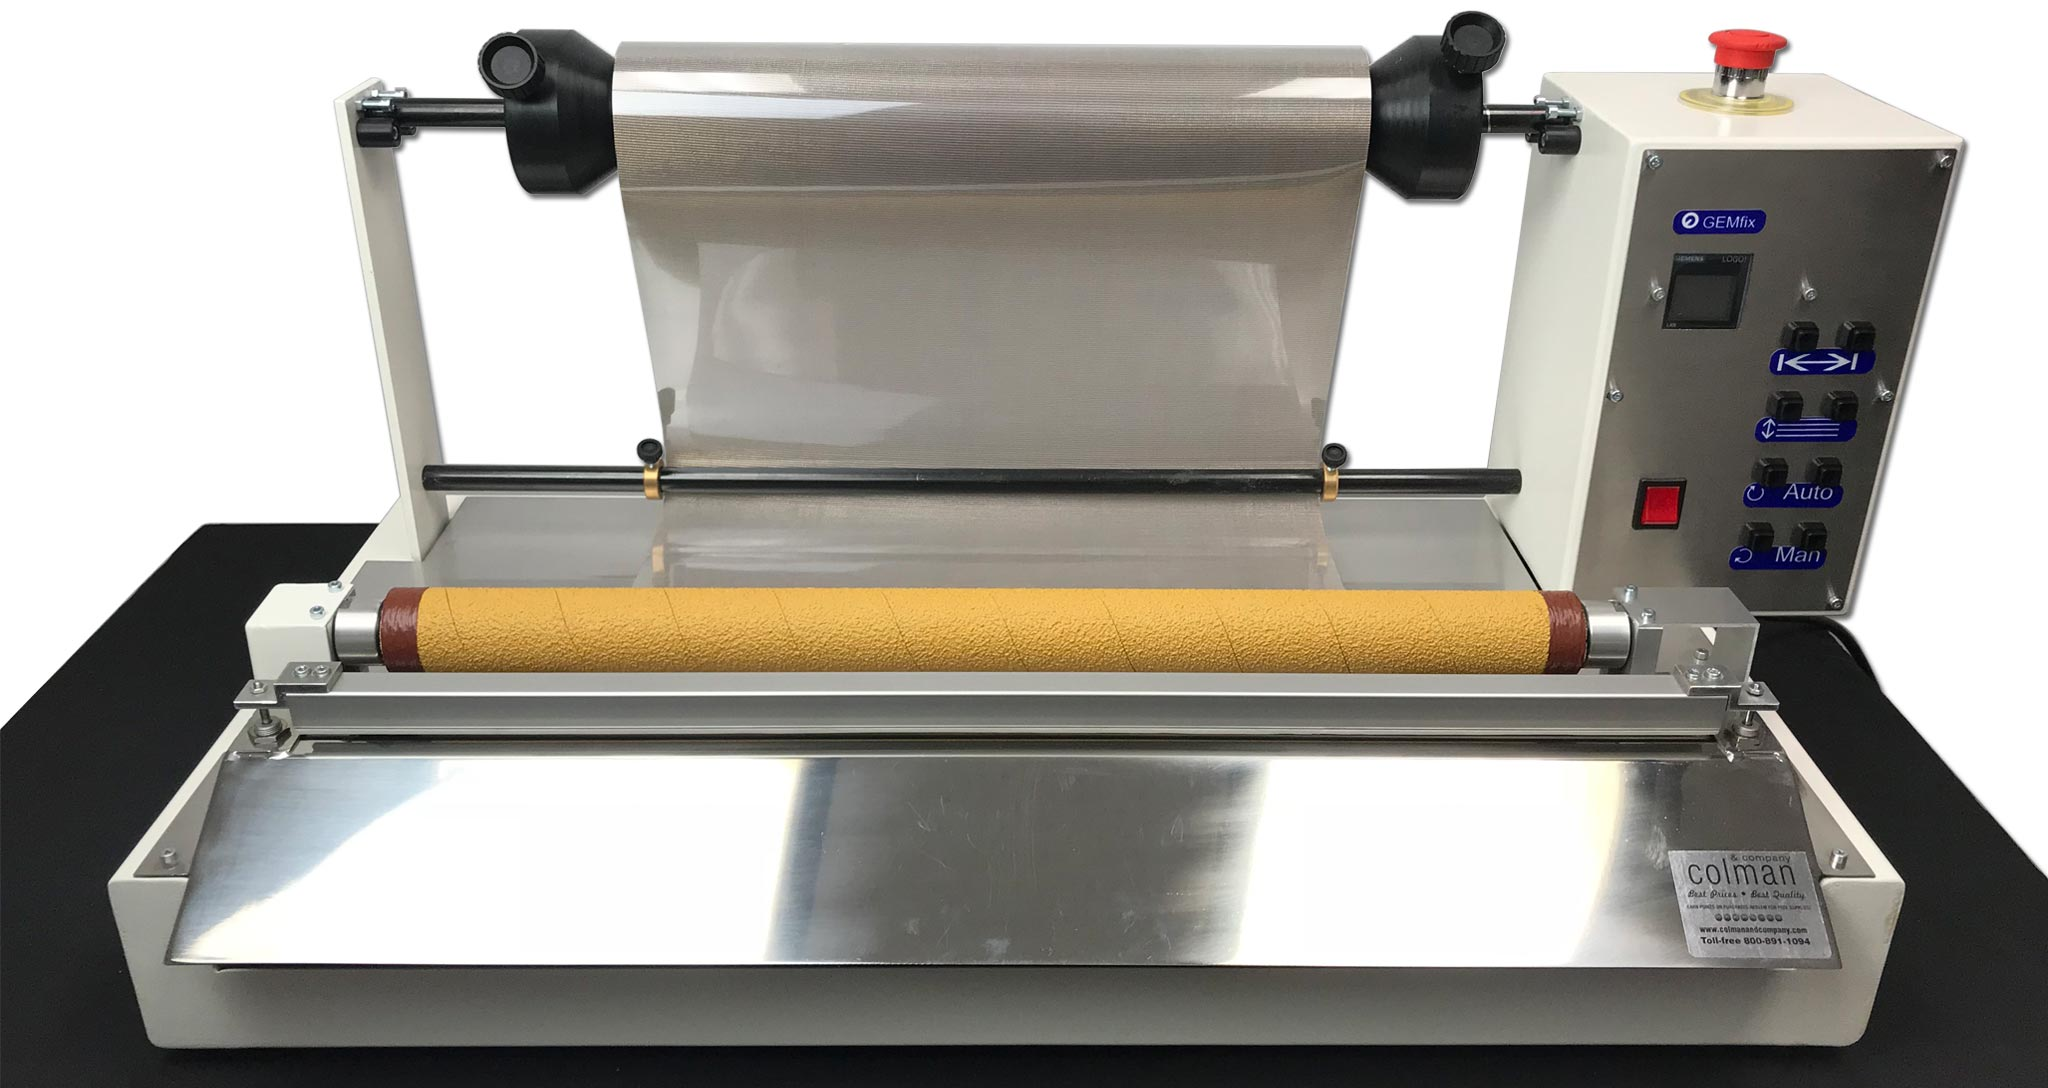 Cut Rolls-into-Sheets | Colman and Company